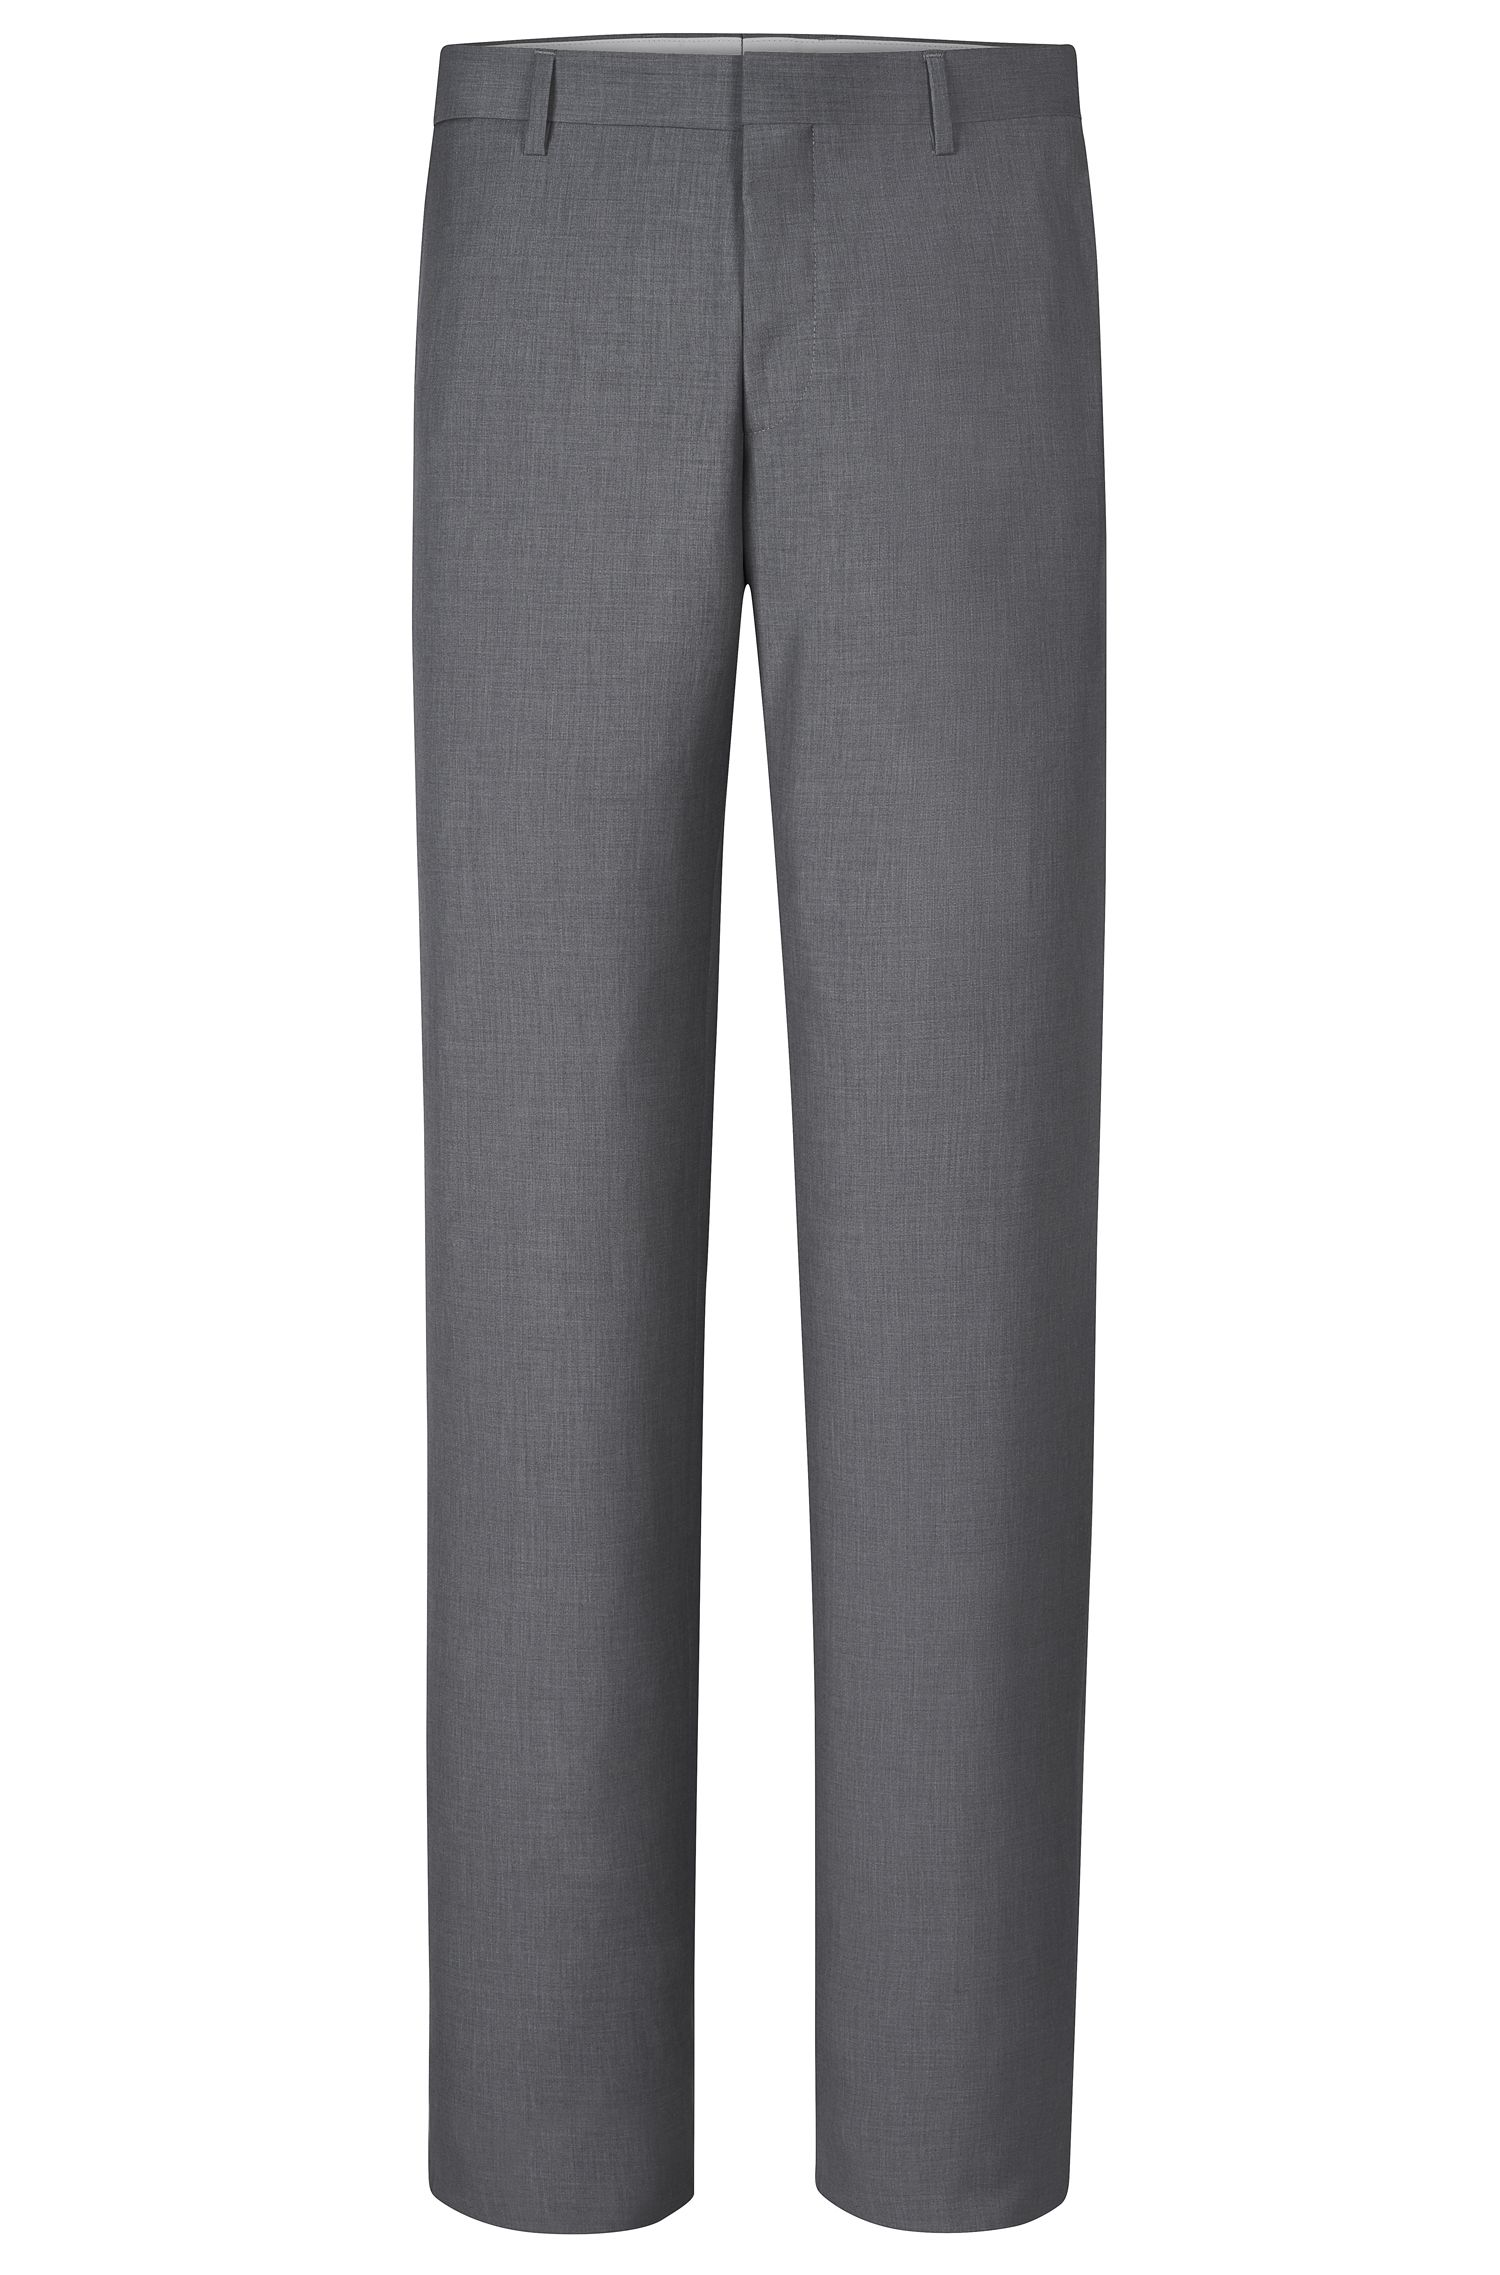 'Genesis' | Slim Fit, Virgin Wool Cashmere Dress Pants